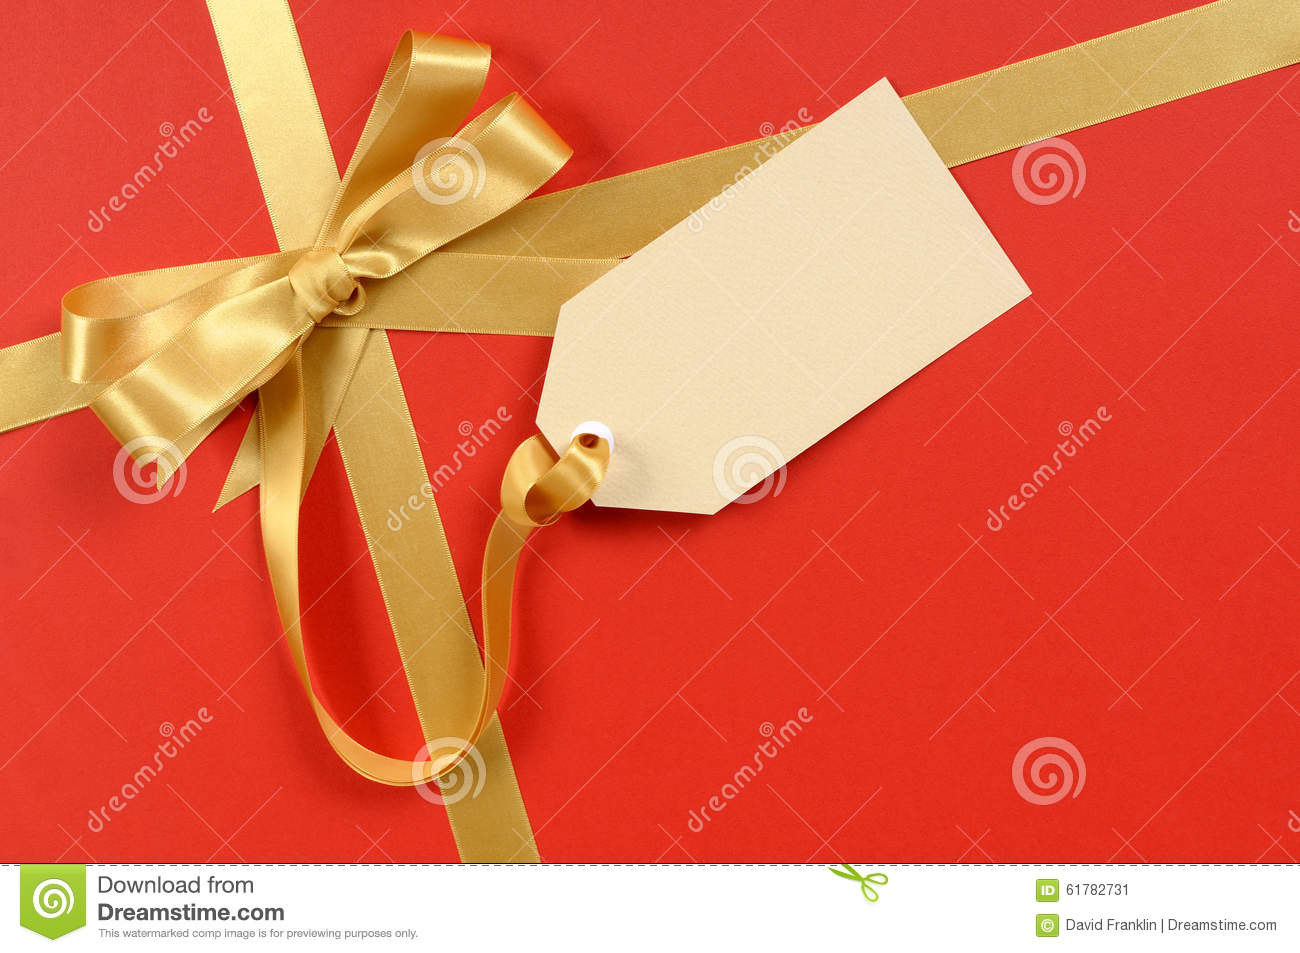 red christmas gift background gold ribbon bow blank manila gift